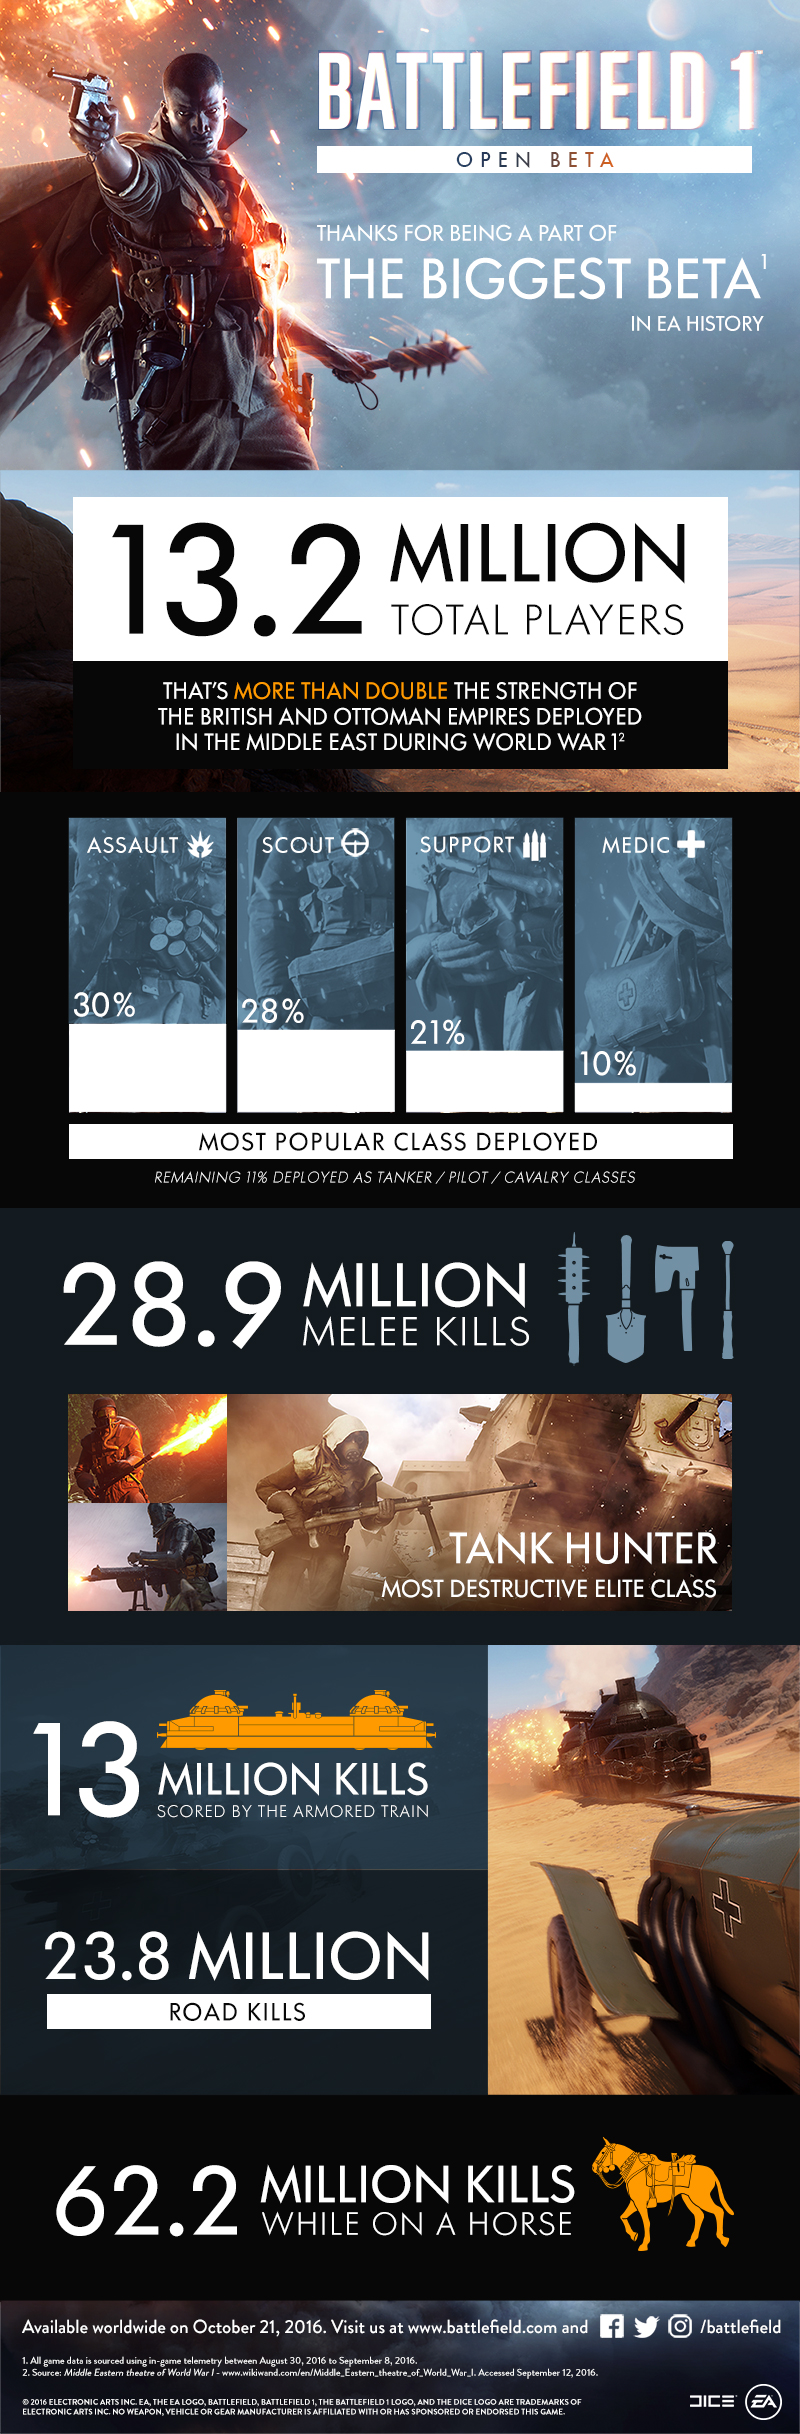 bf1-betainfographic_final1